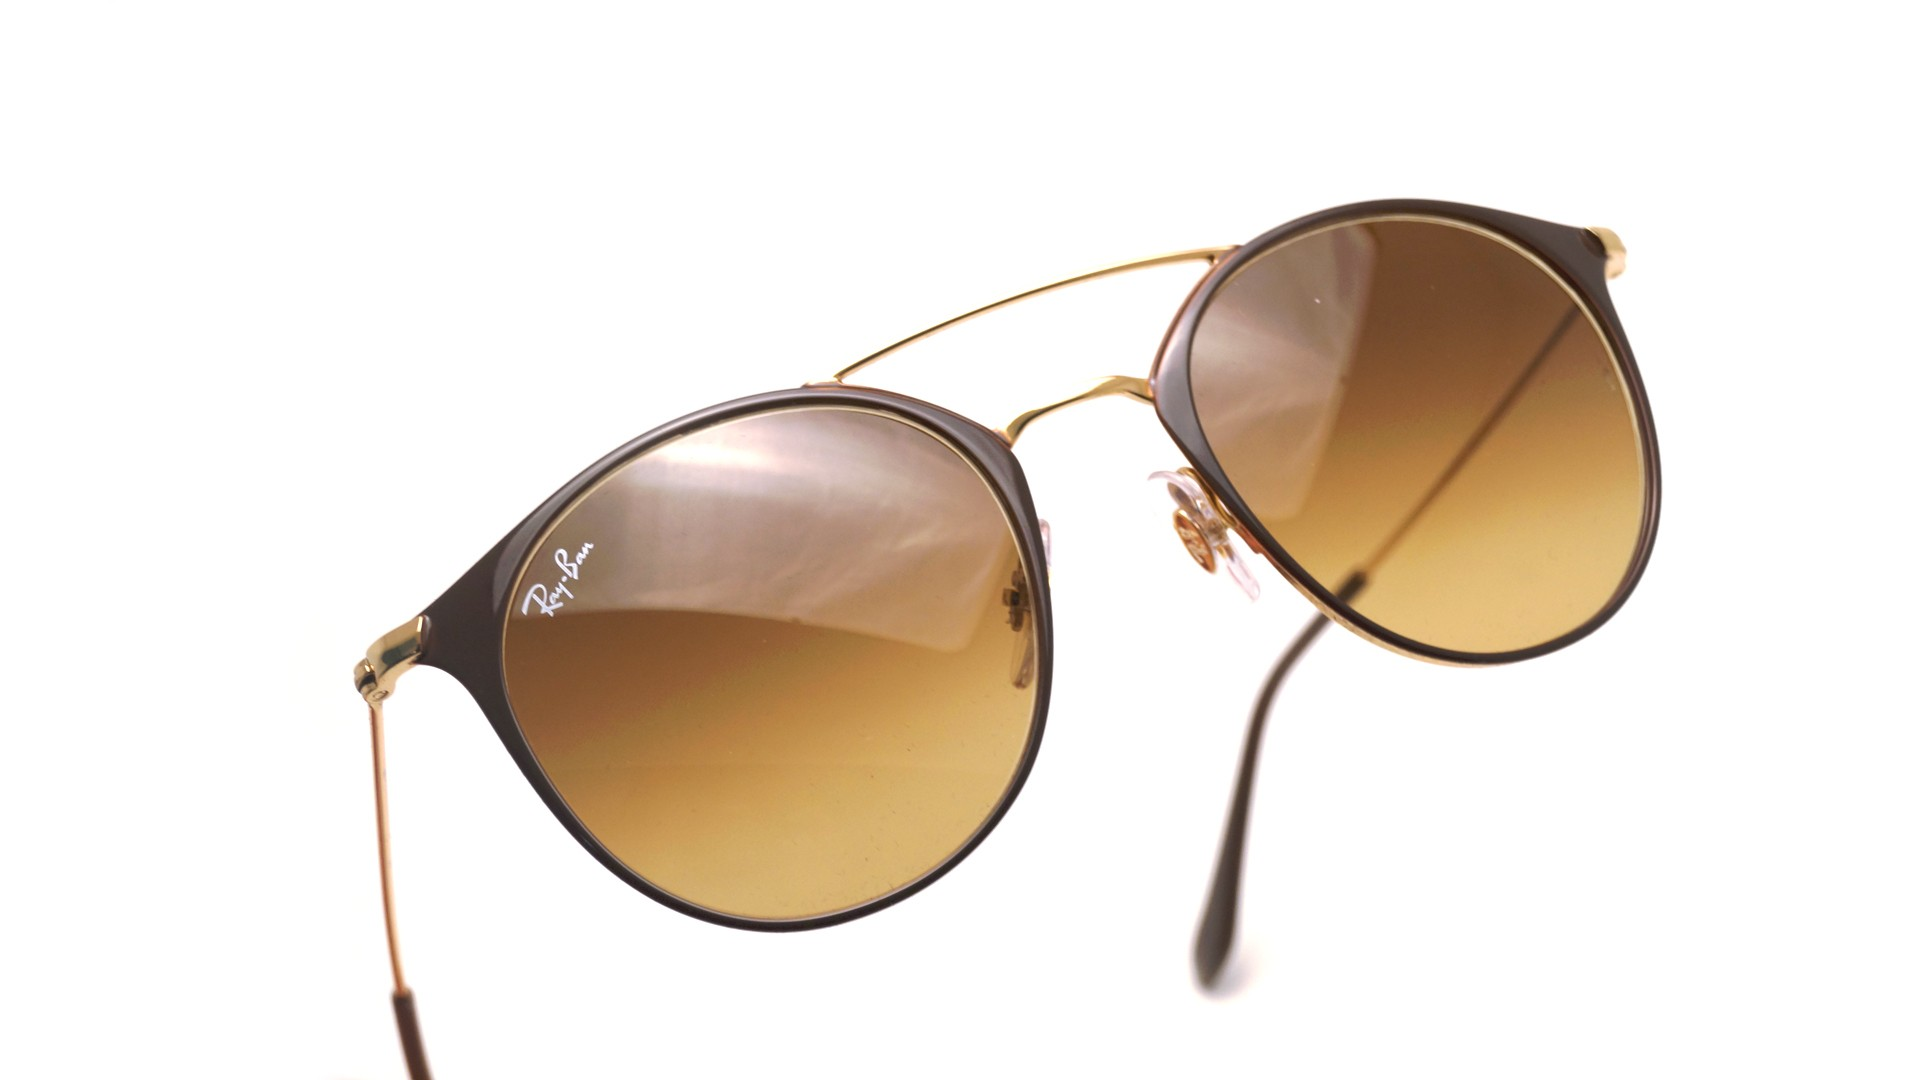 Sunglasses Ray-Ban RB3546 9009 85 49-20 Brown Small Gradient 87290a5bbf5